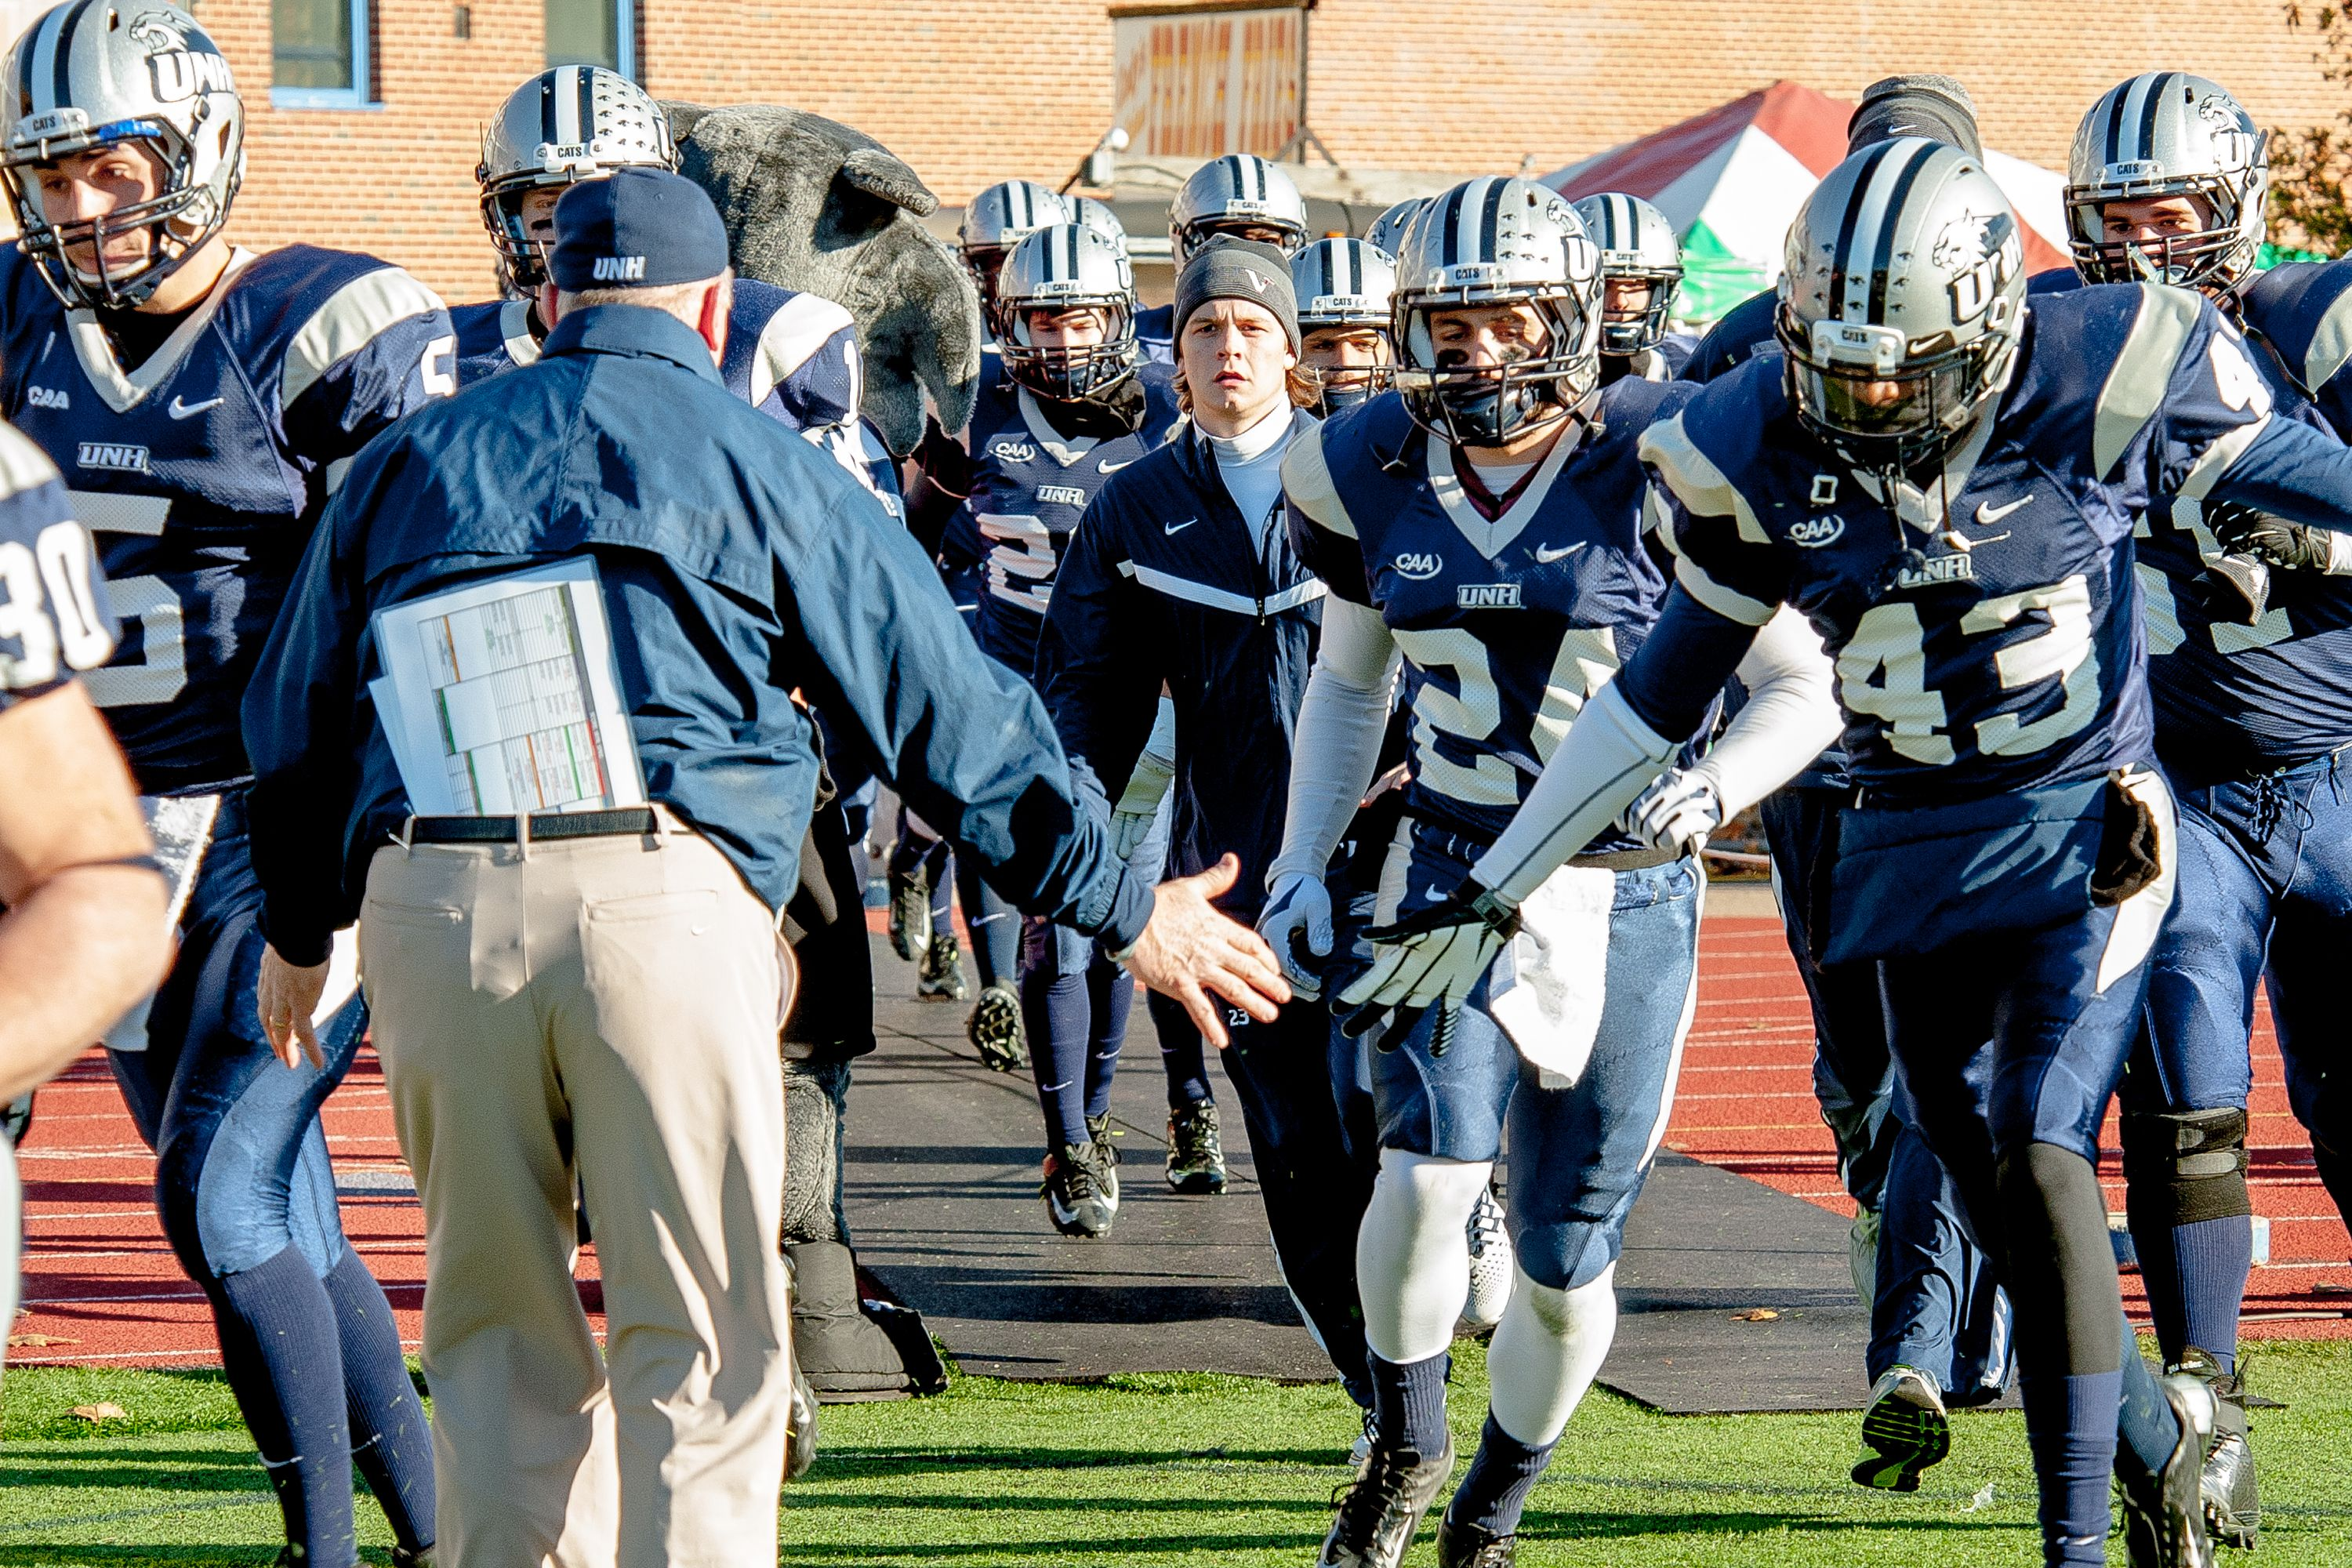 Unh Football Makes The 2013 Playoffs And Opens Up At Home With A Win